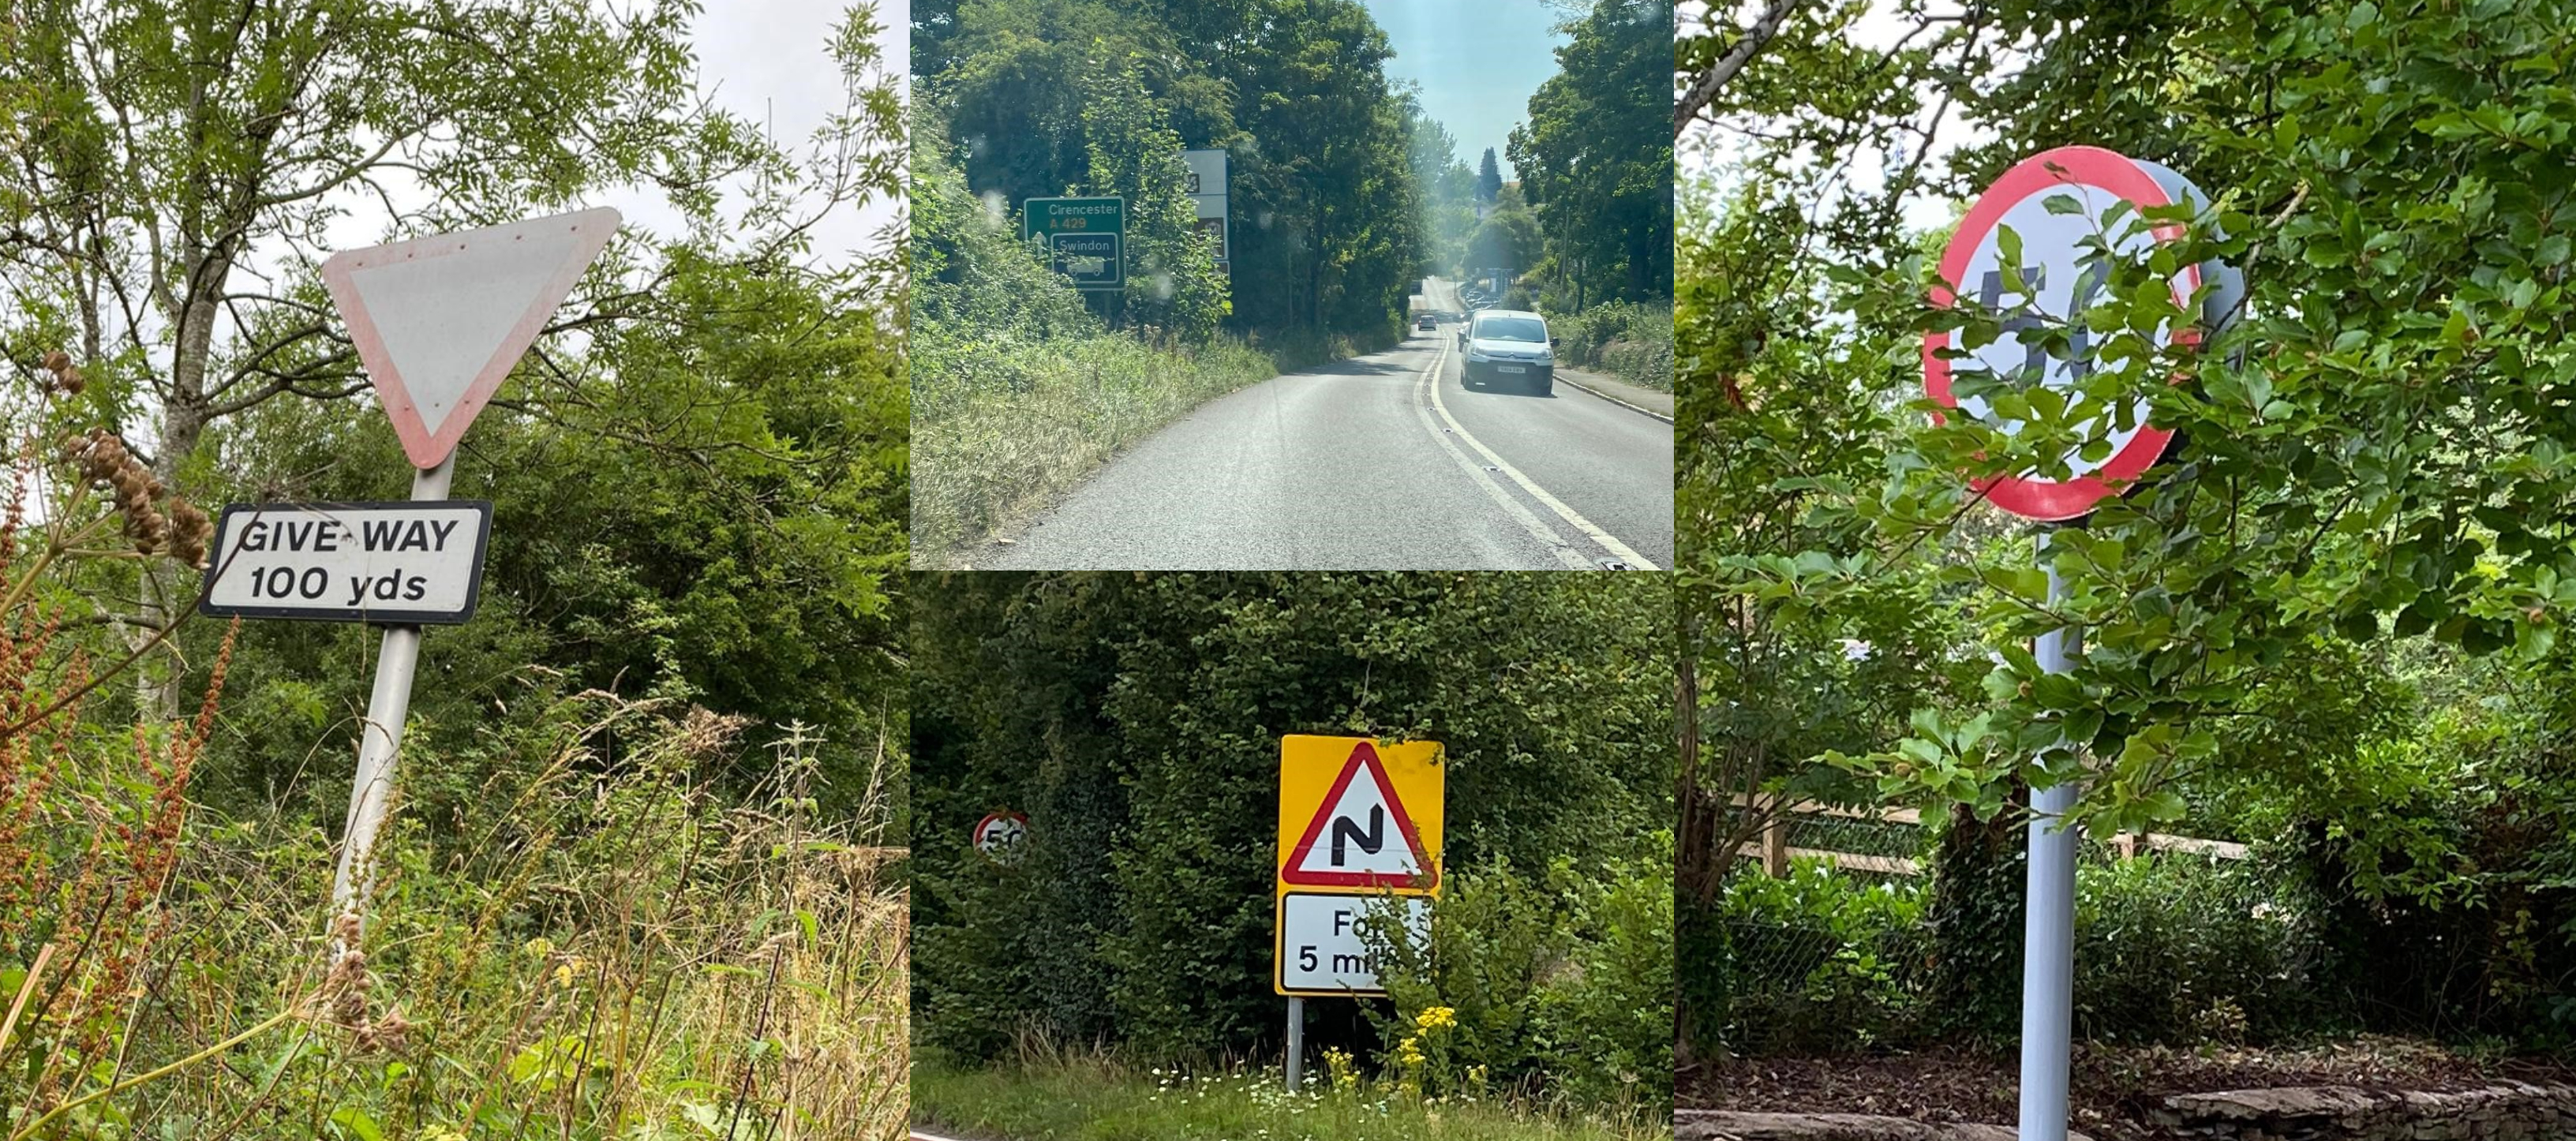 Campaign launched to clear Gloucestershire's dangerously unreadable road signs